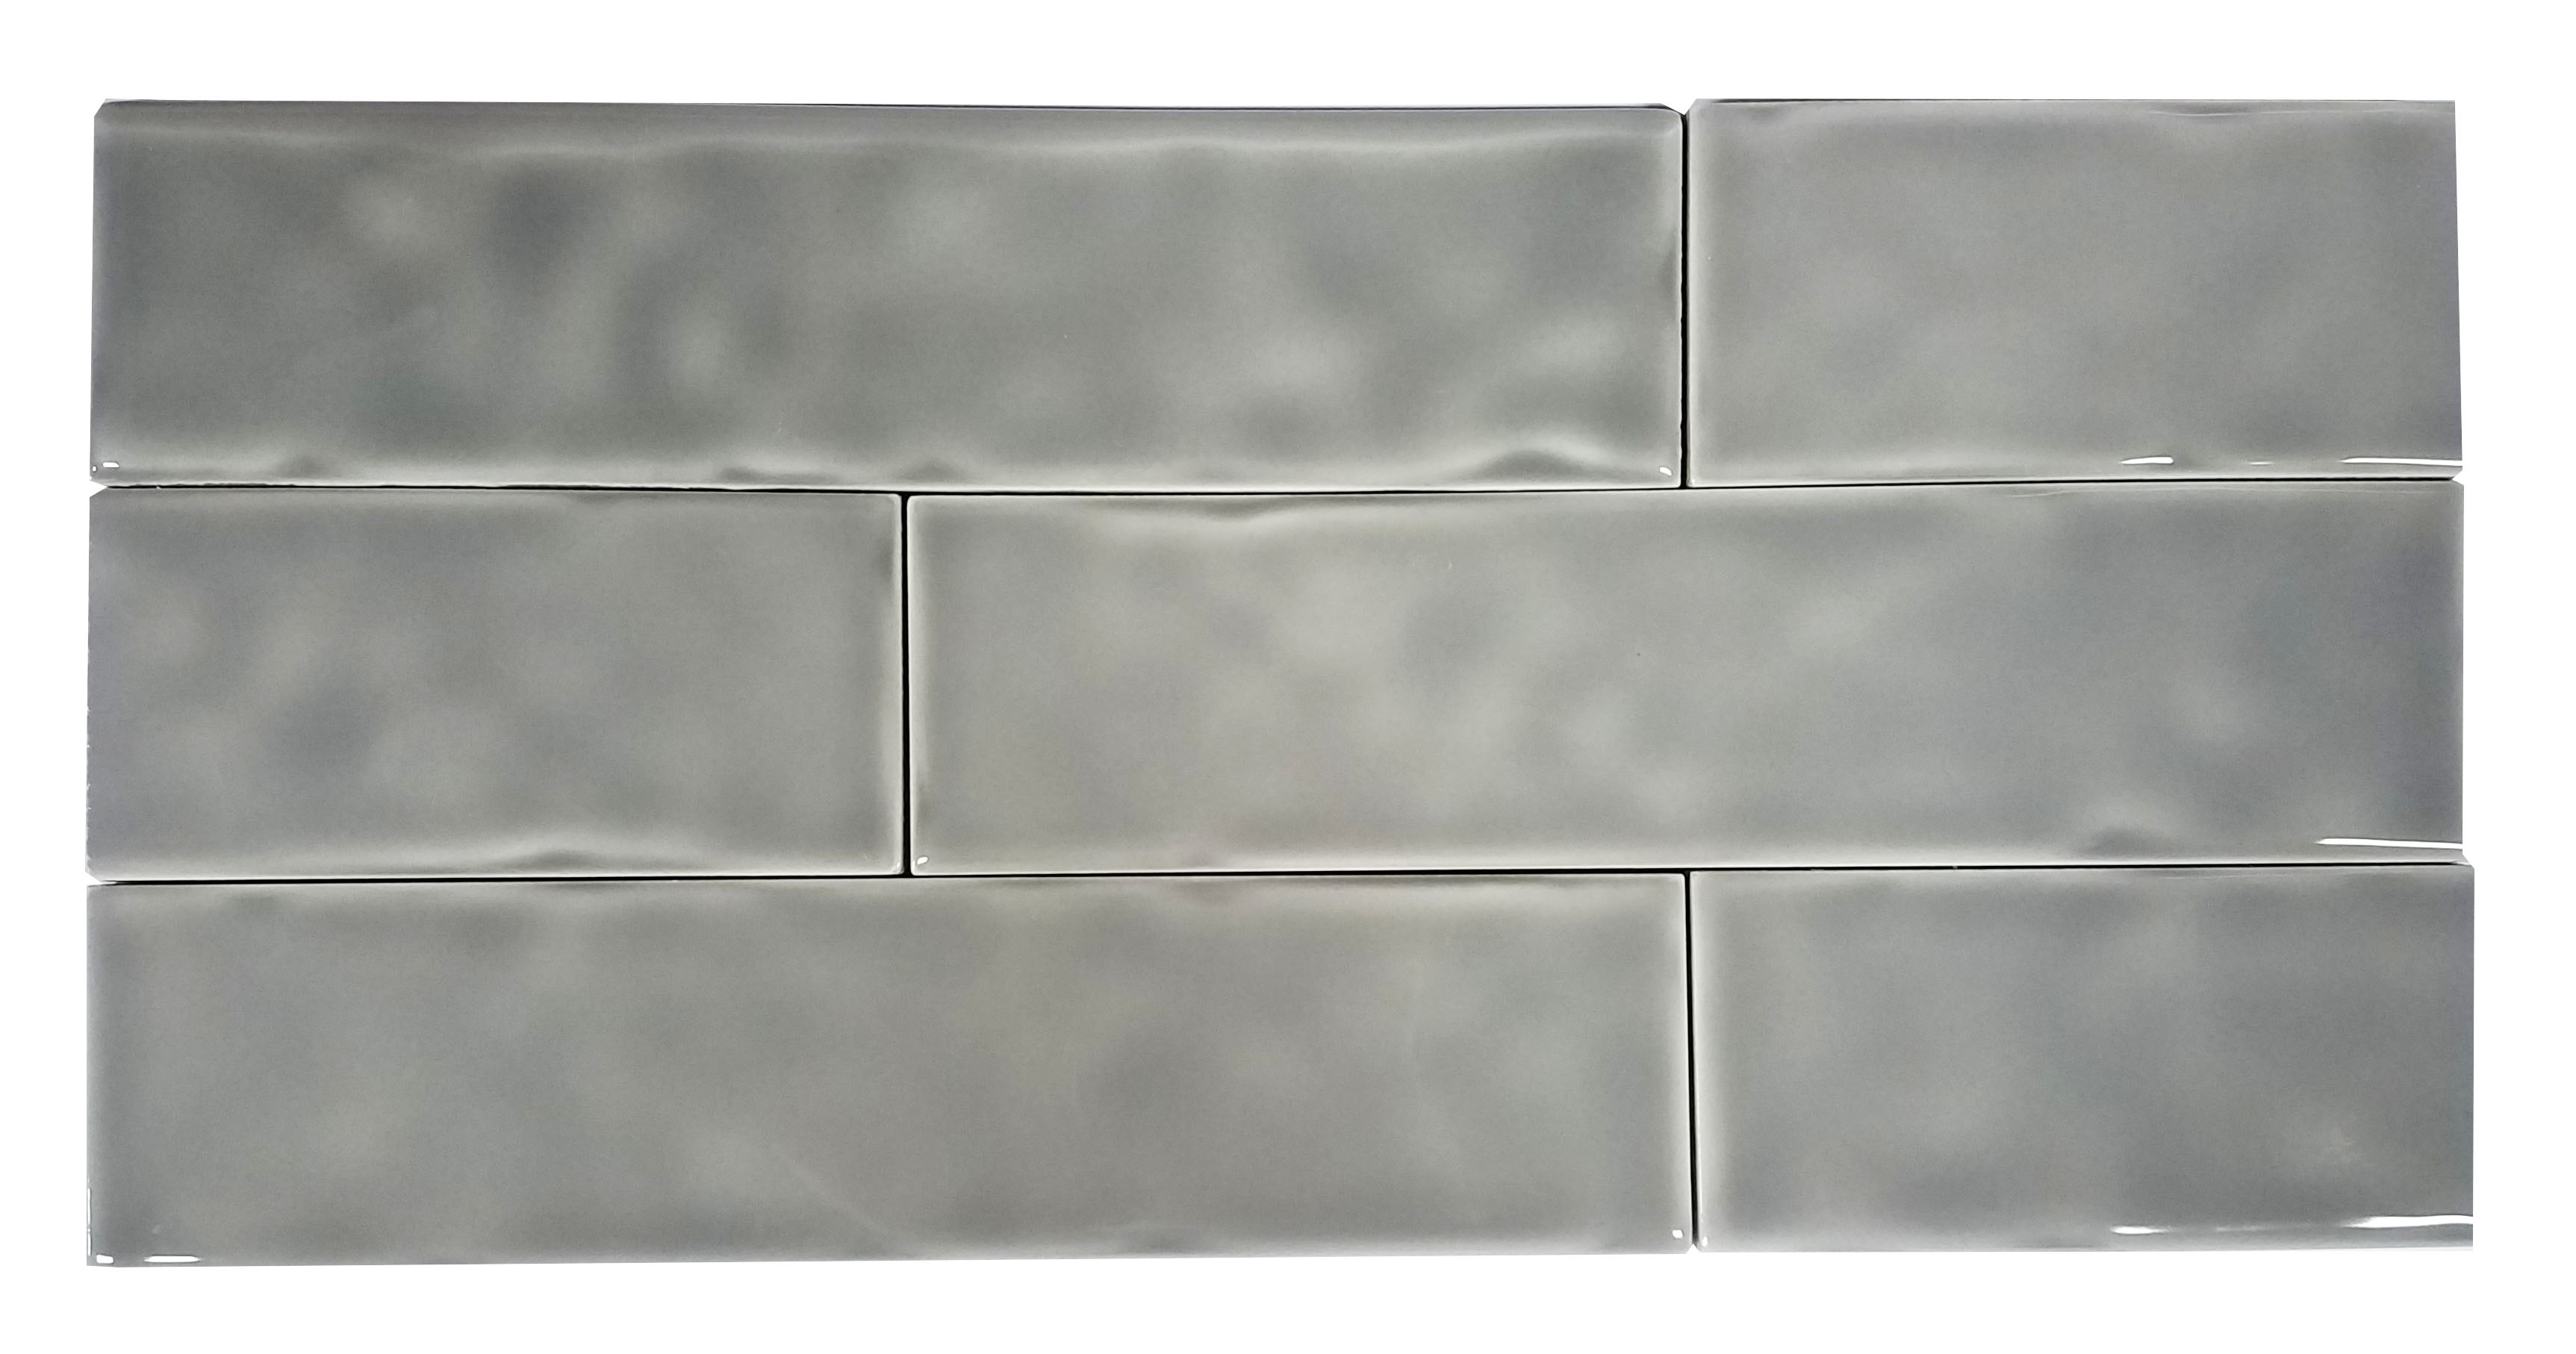 2 x 8 Chelsea Lavagna Ceramic Wall subway